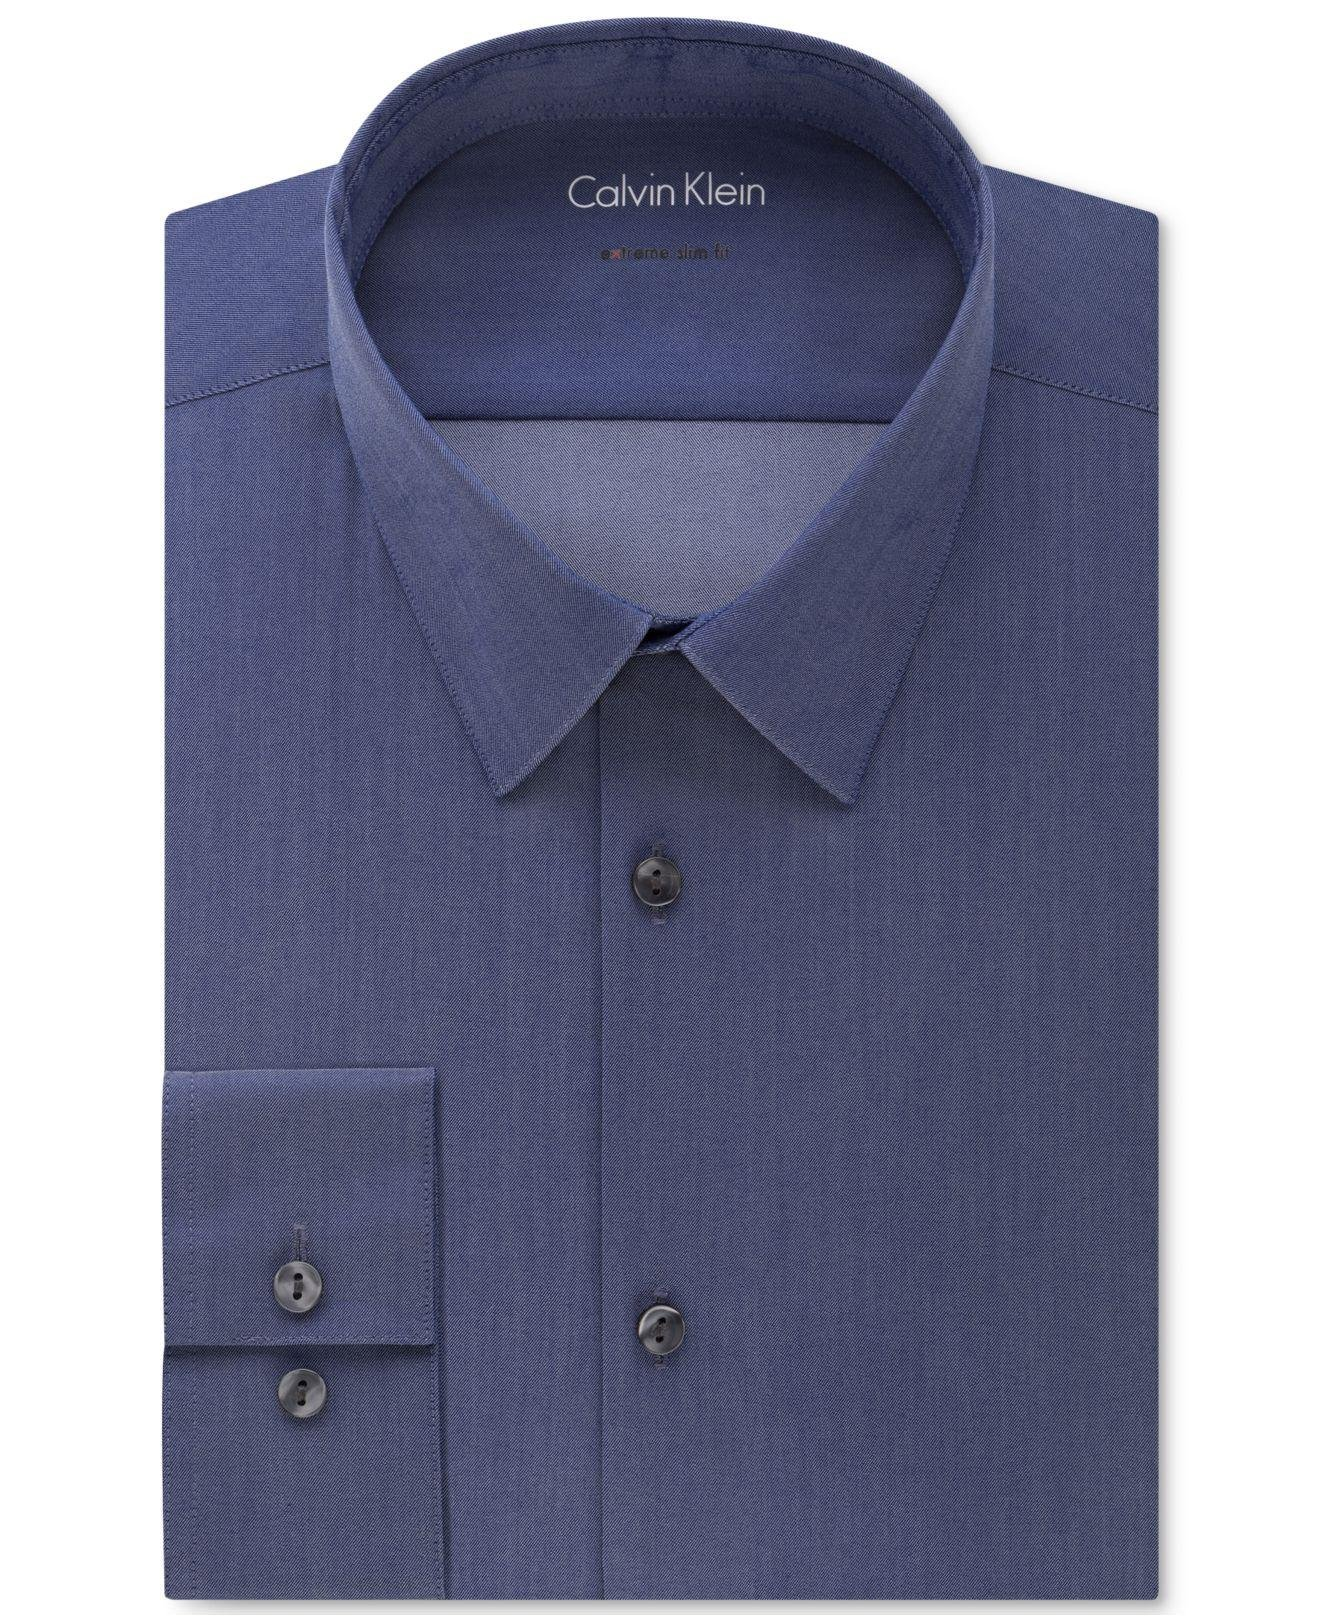 Calvin klein men 39 s extra slim fit stretch navy chambray for Calvin klein slim fit stretch shirt